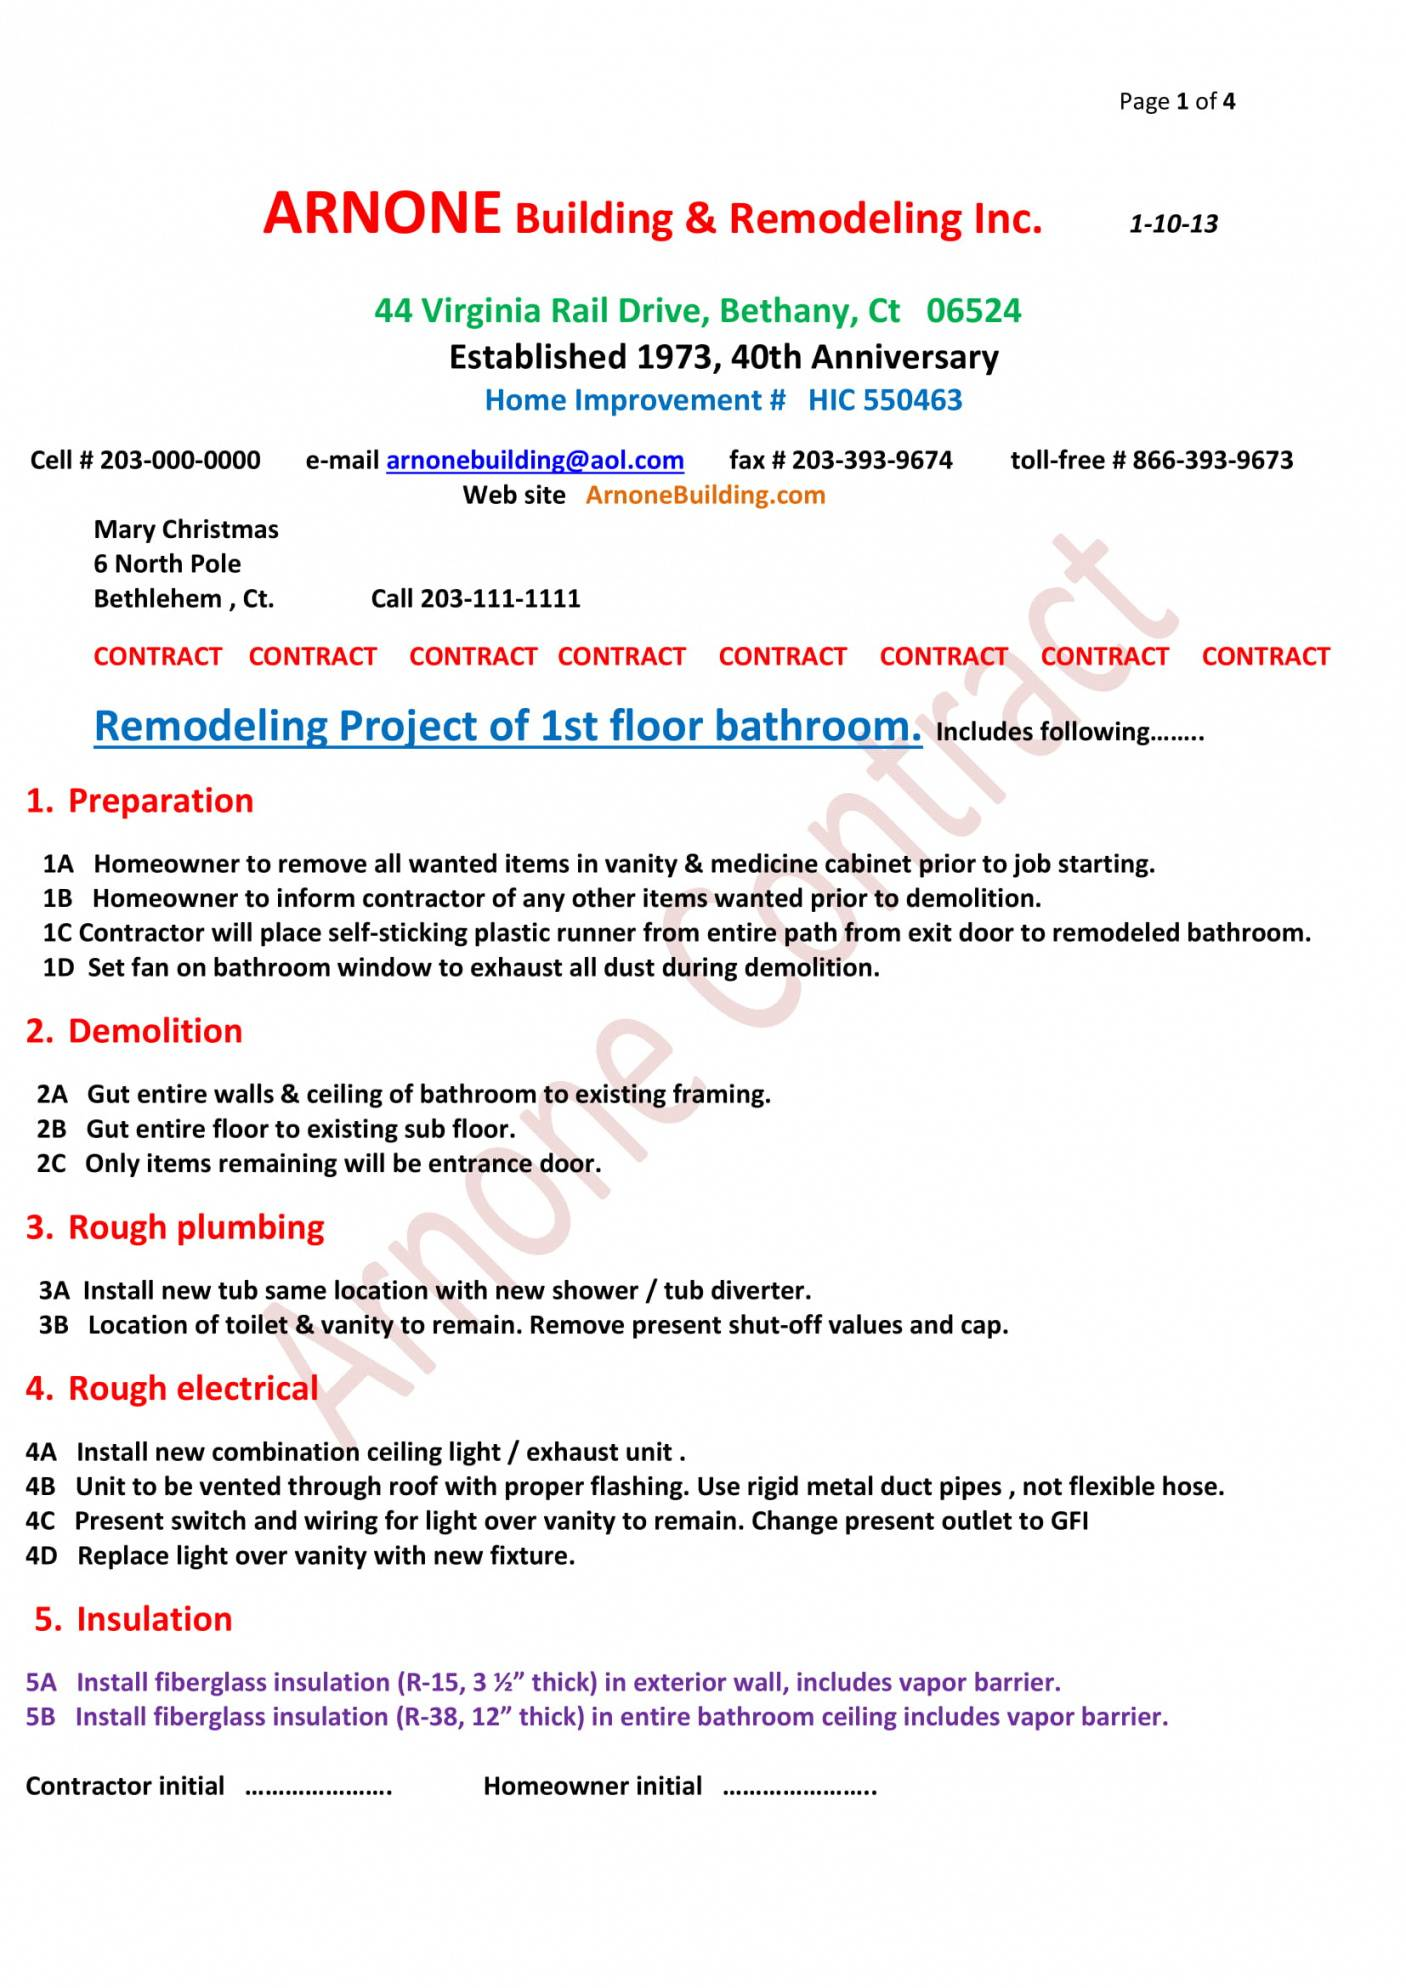 Renovation Contract Template Pdf